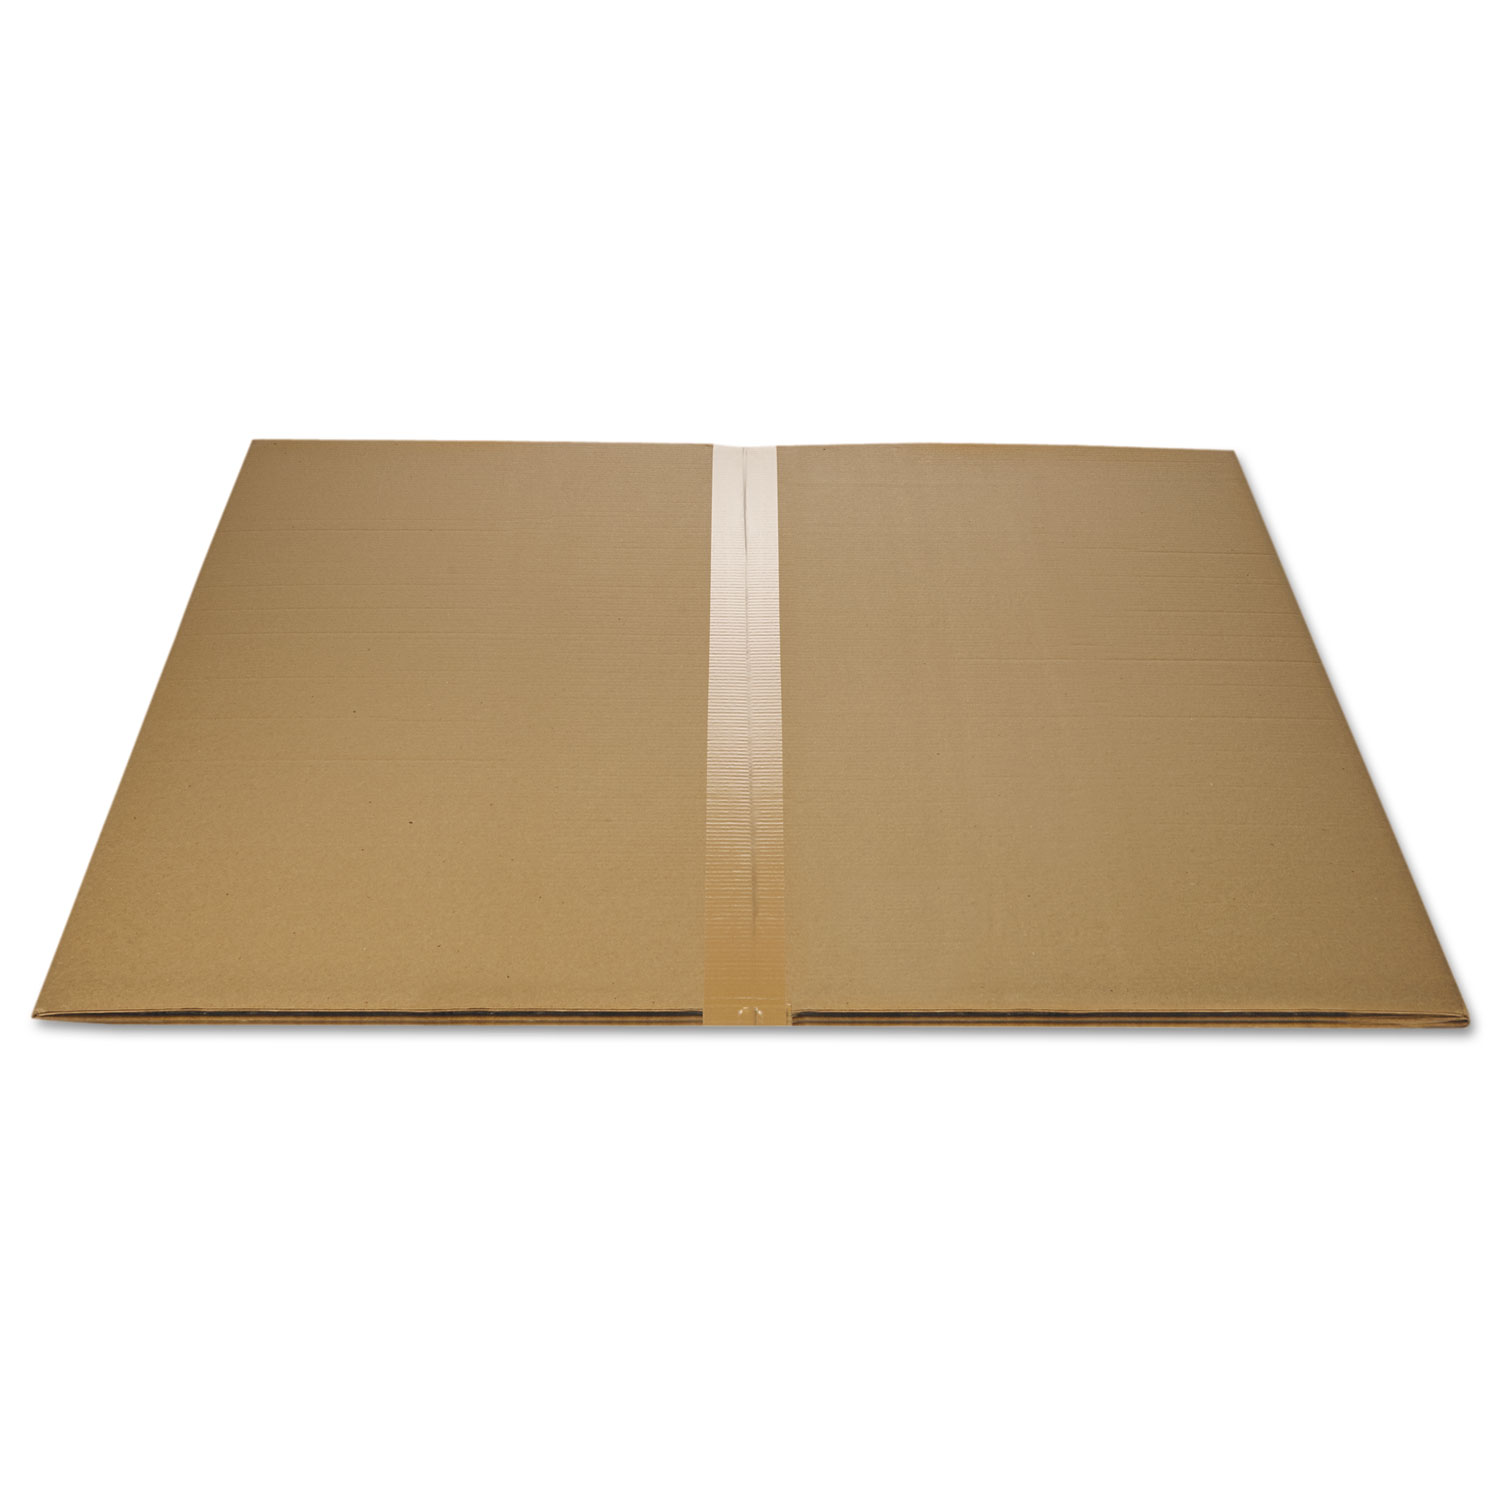 office chair mat 45 x 53 counter height dining table and chairs environmat recycled anytime use for hard floor